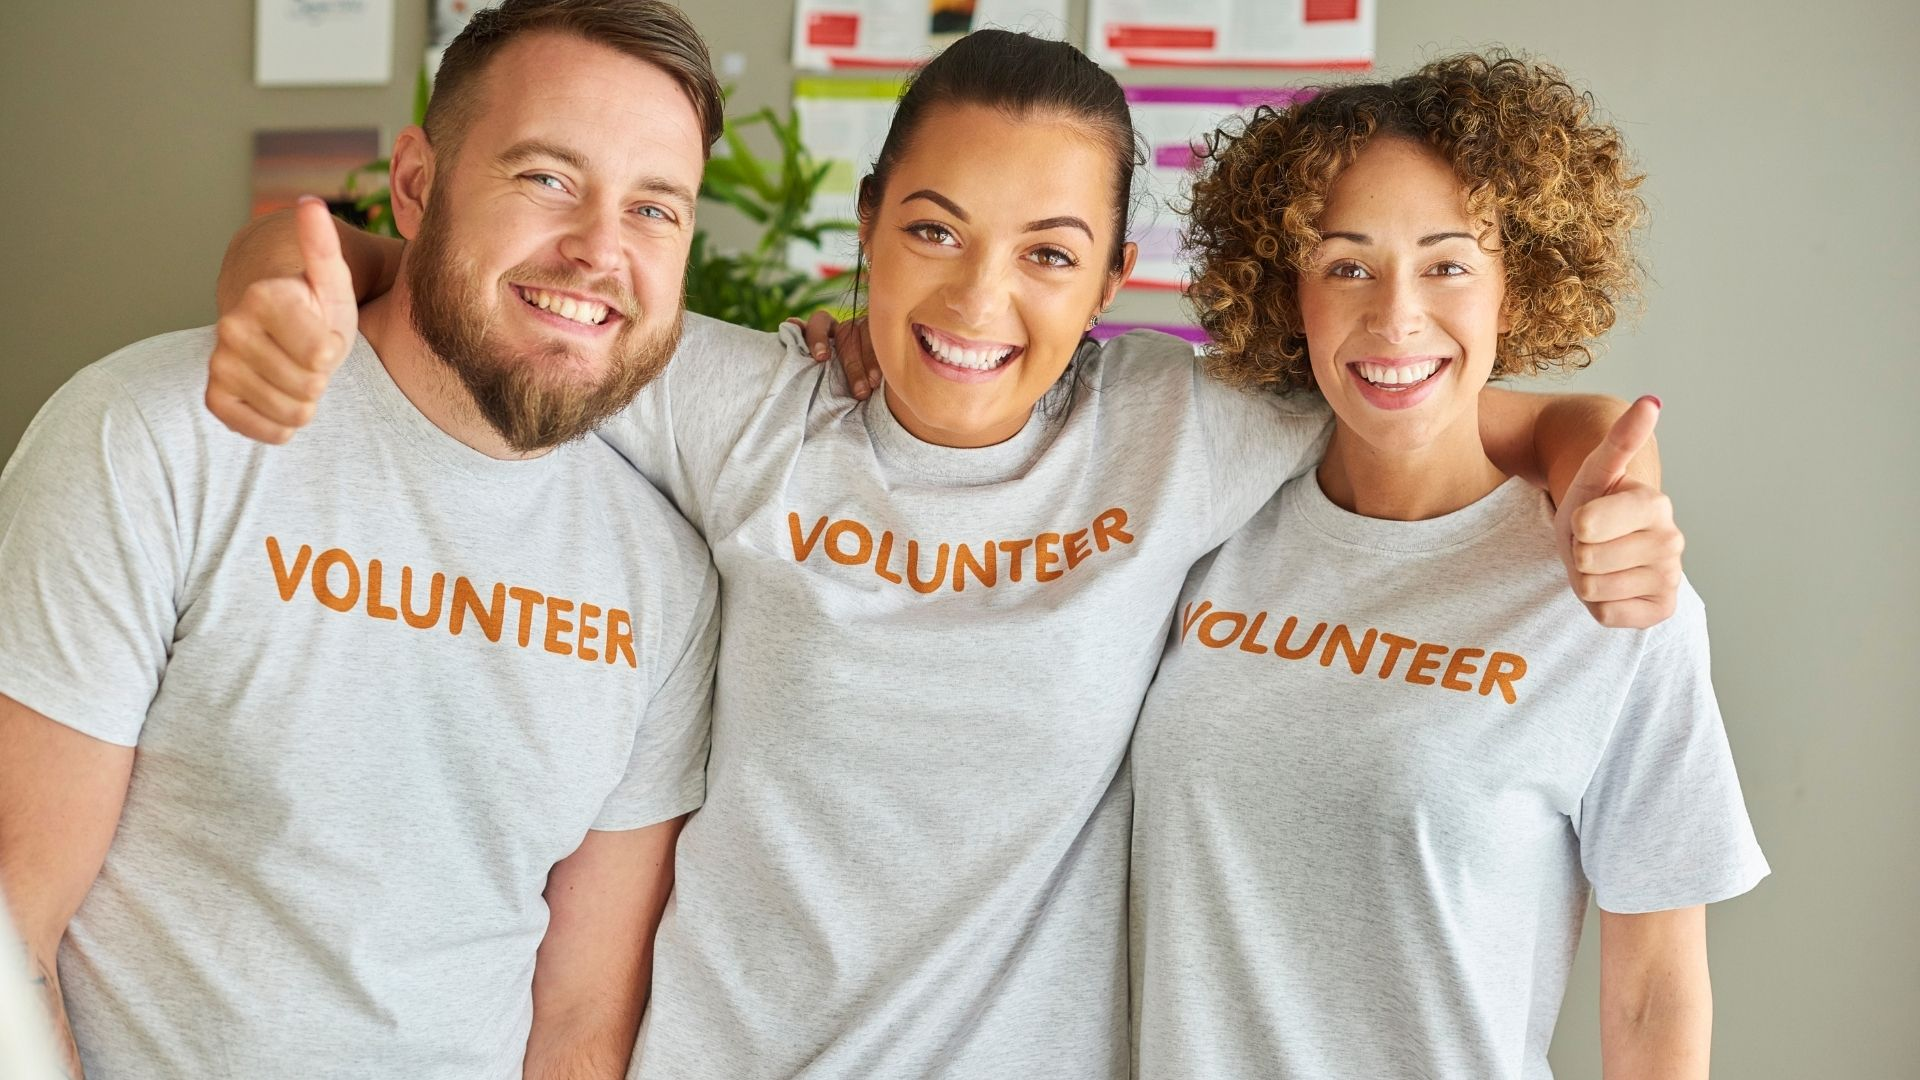 5 Great Ways to Keep Your Volunteers Engaged